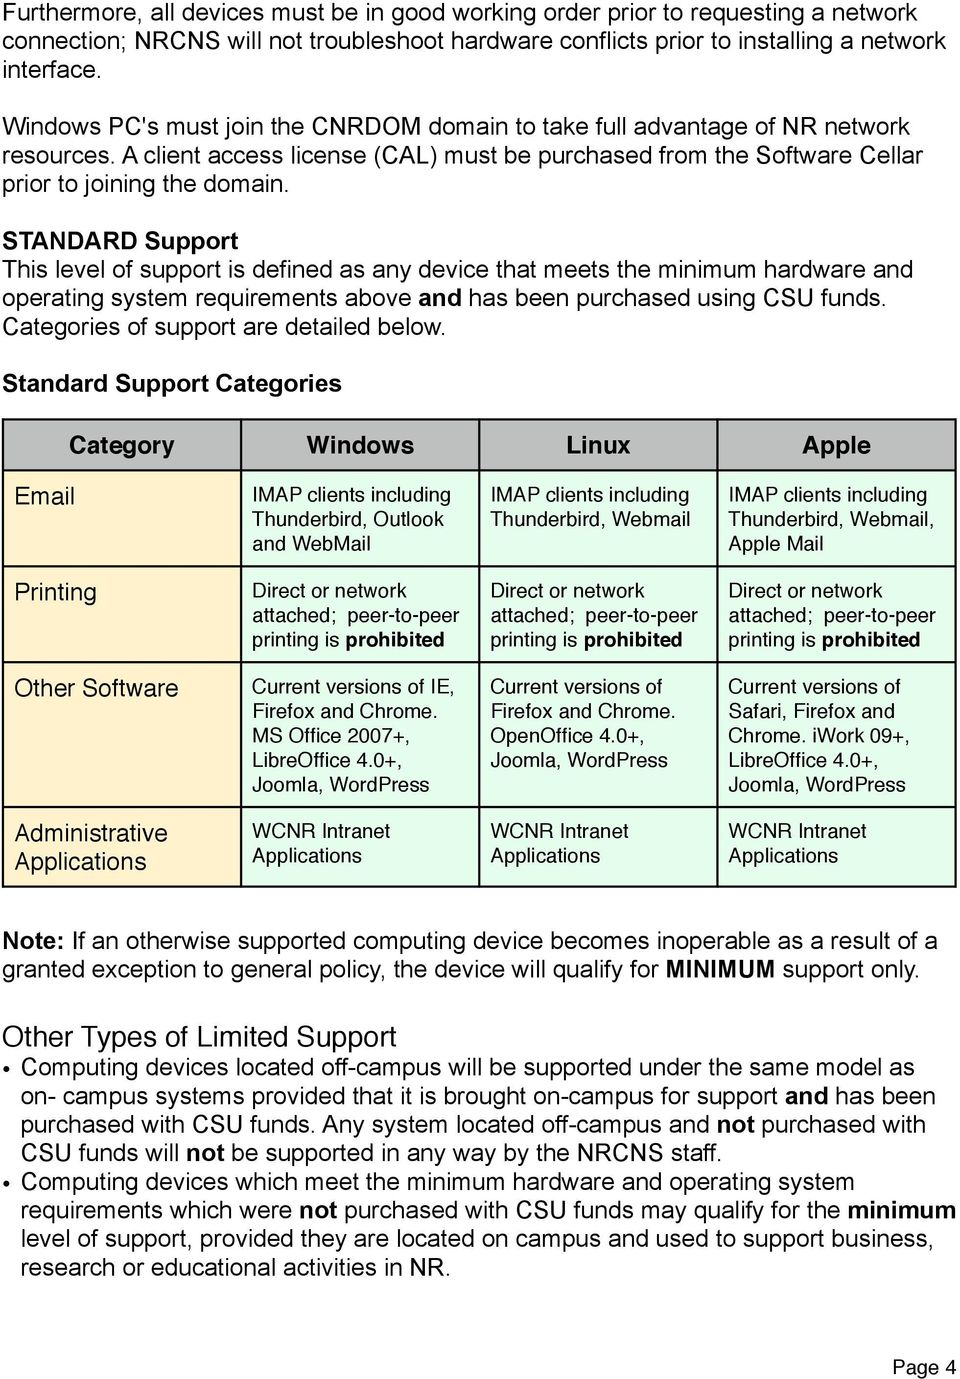 STANDARD Support This level of support is defined as any device that meets the minimum hardware and operating system requirements above and has been purchased using CSU funds.